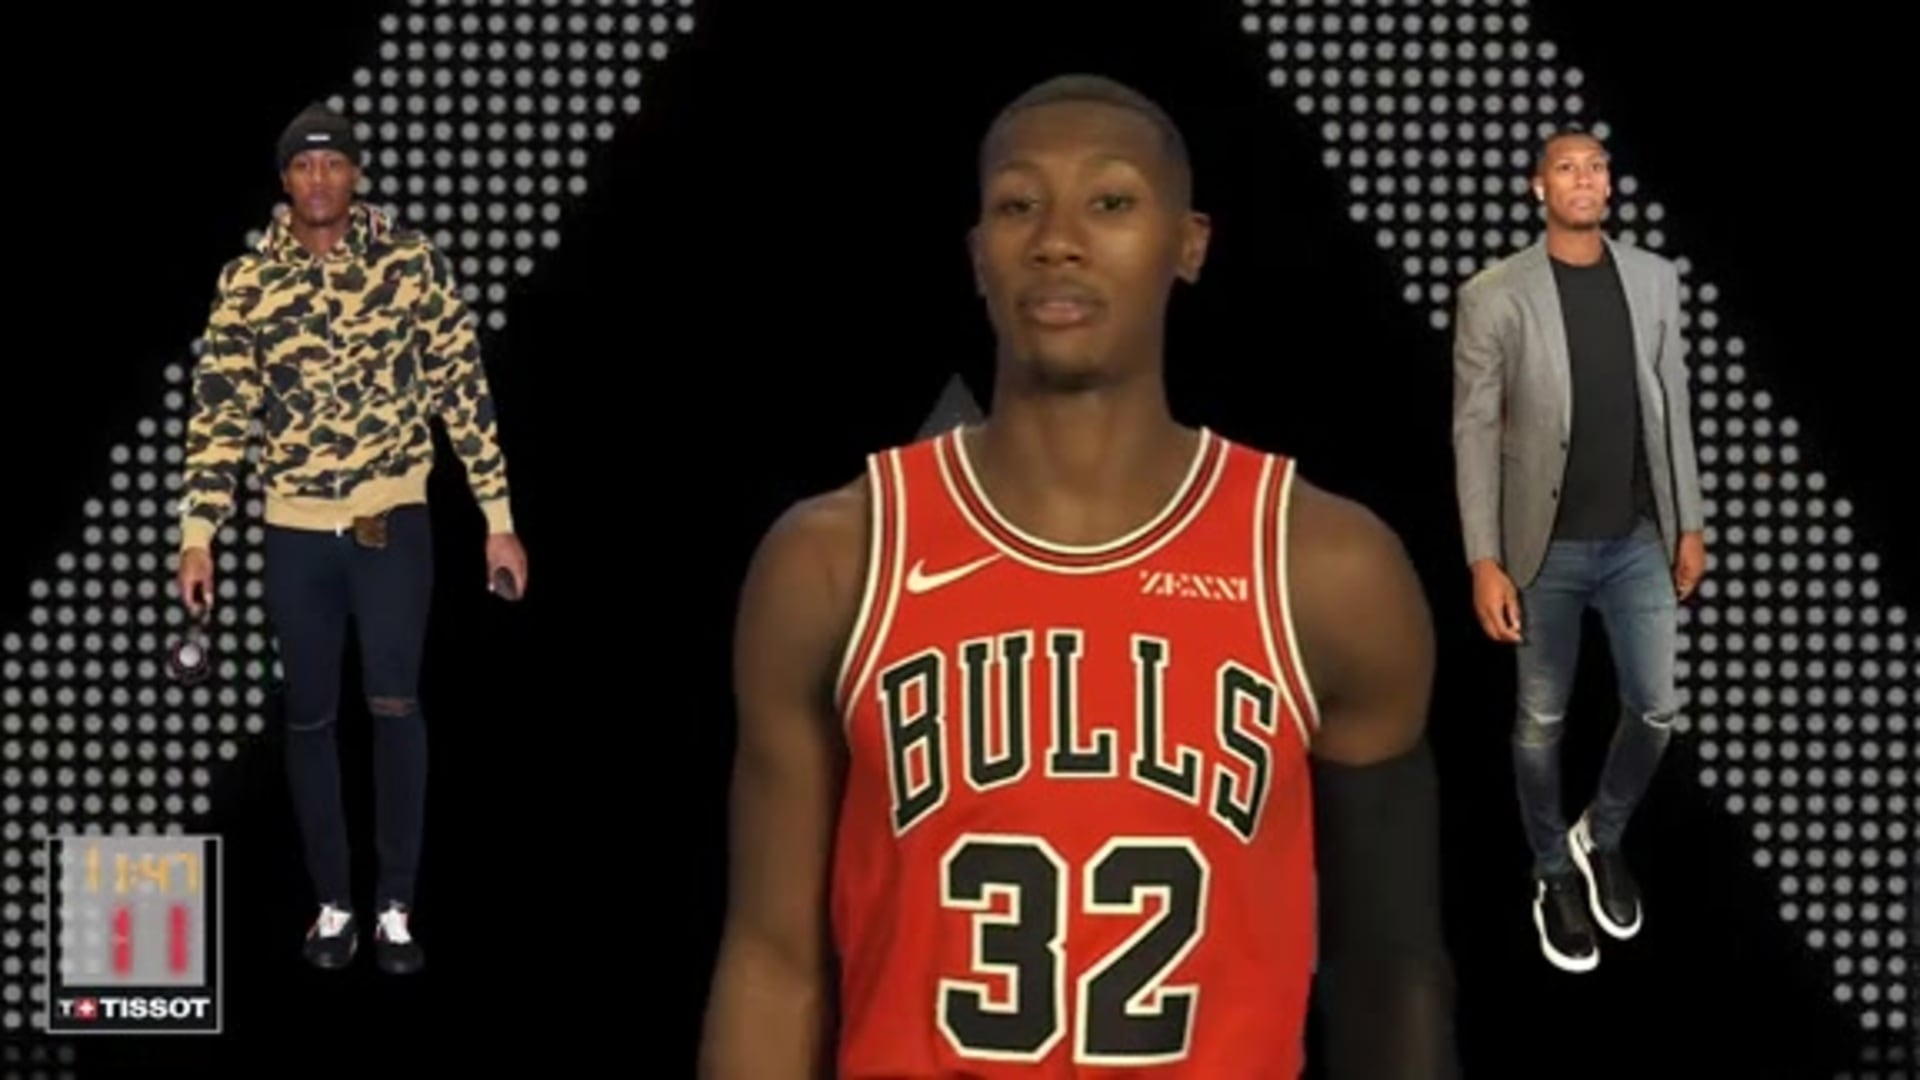 Kris Dunn - Style In :24 with Tissot